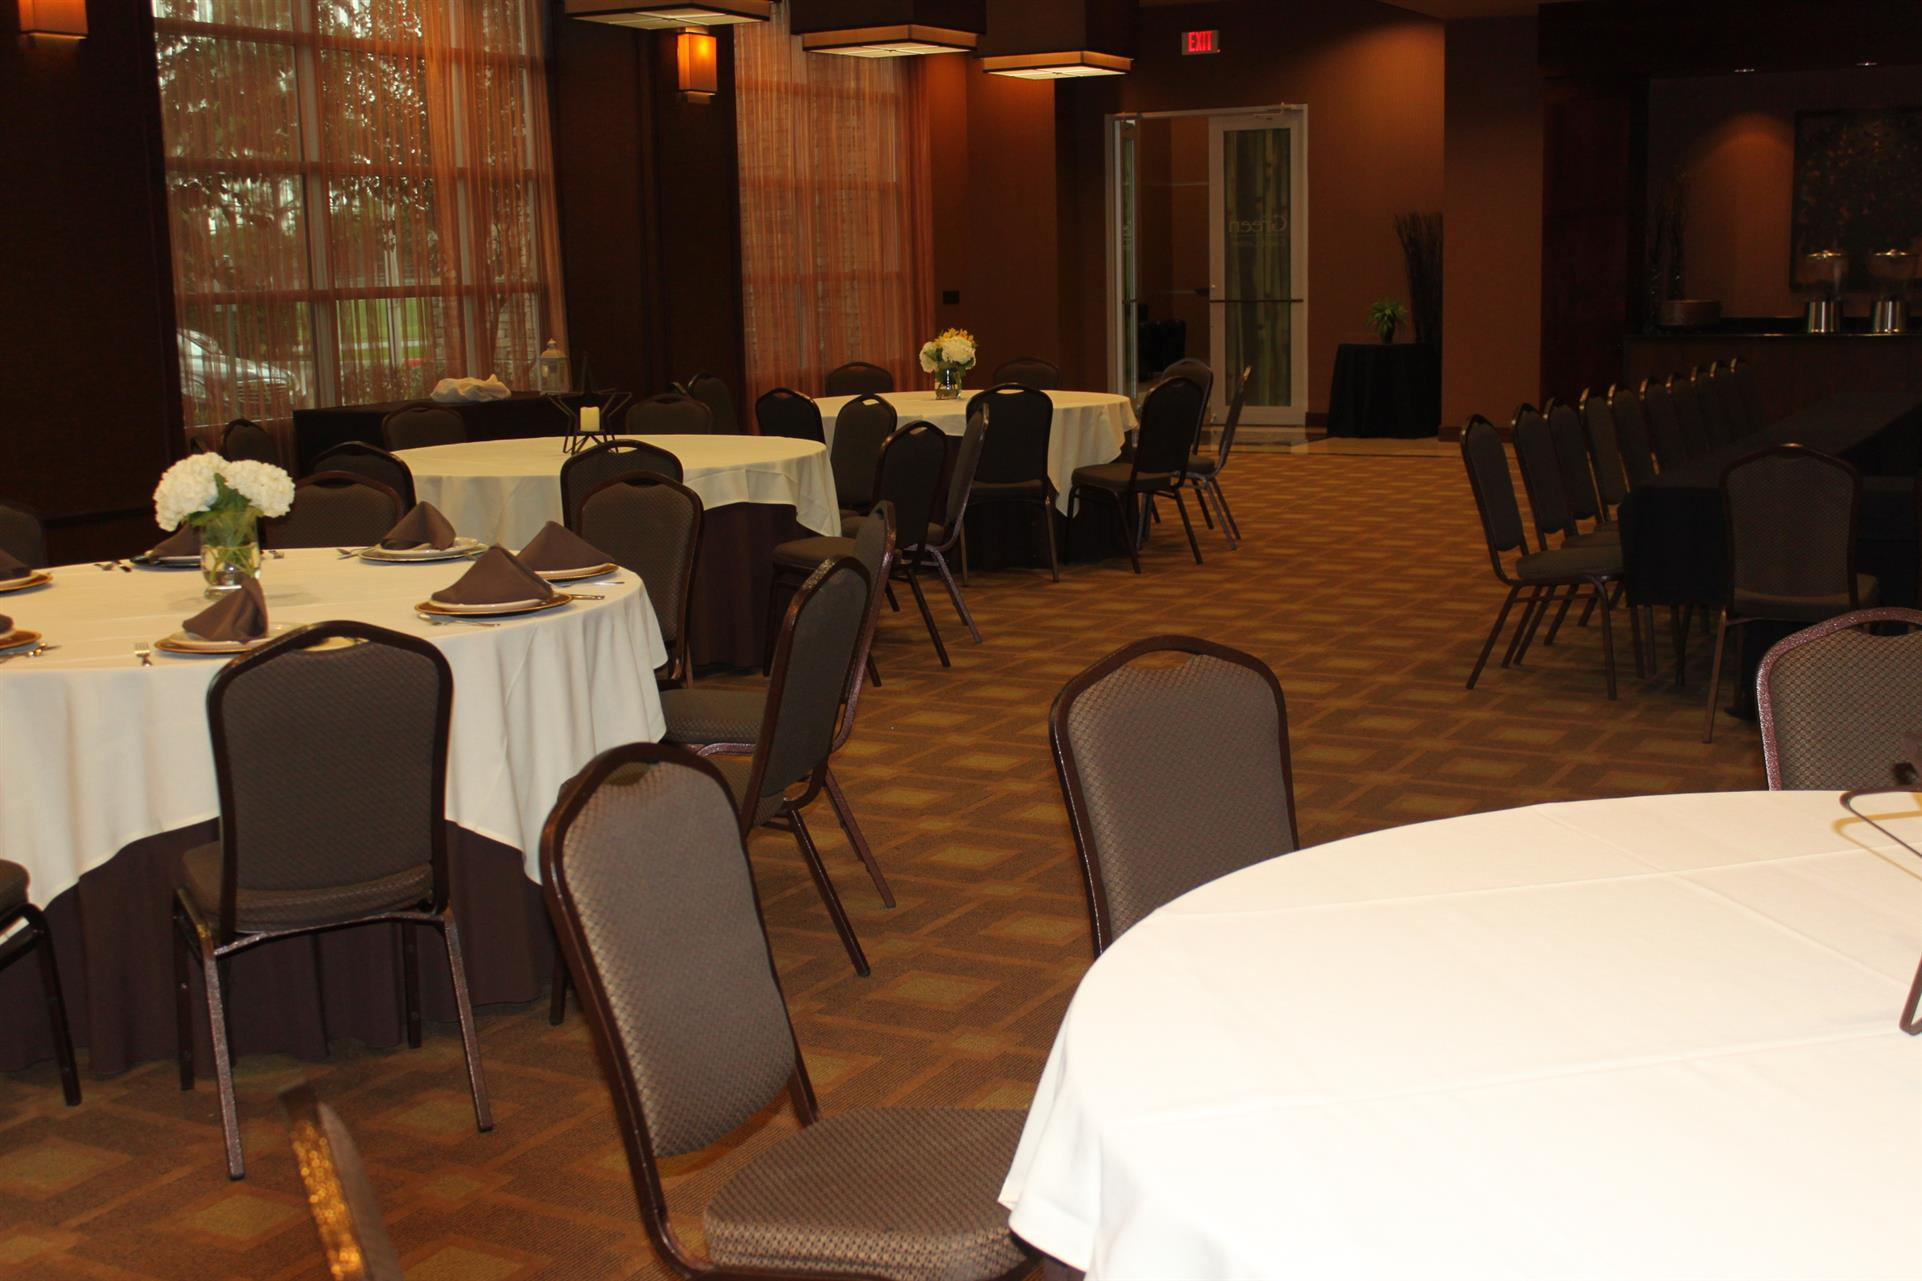 Corporate event space with round tables and chairs